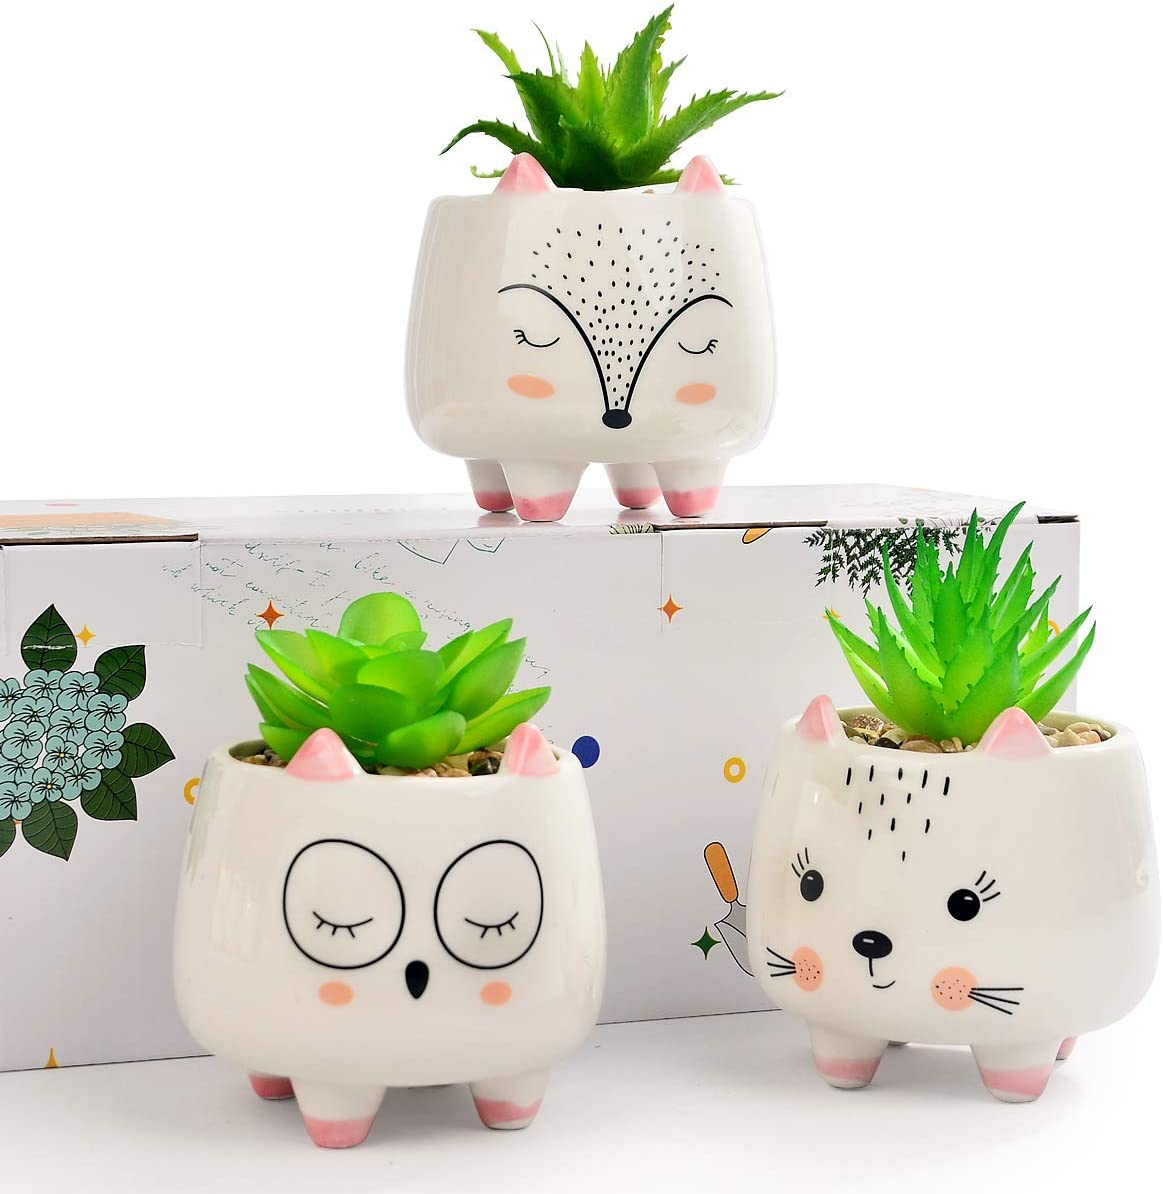 3 Assorted Small Artificial Succulents Potted with White Porcelain Pots Fake Plants in Ceramic Animal Planter Gift Set for Home and Office Decor (Owl & Fox & Cat)